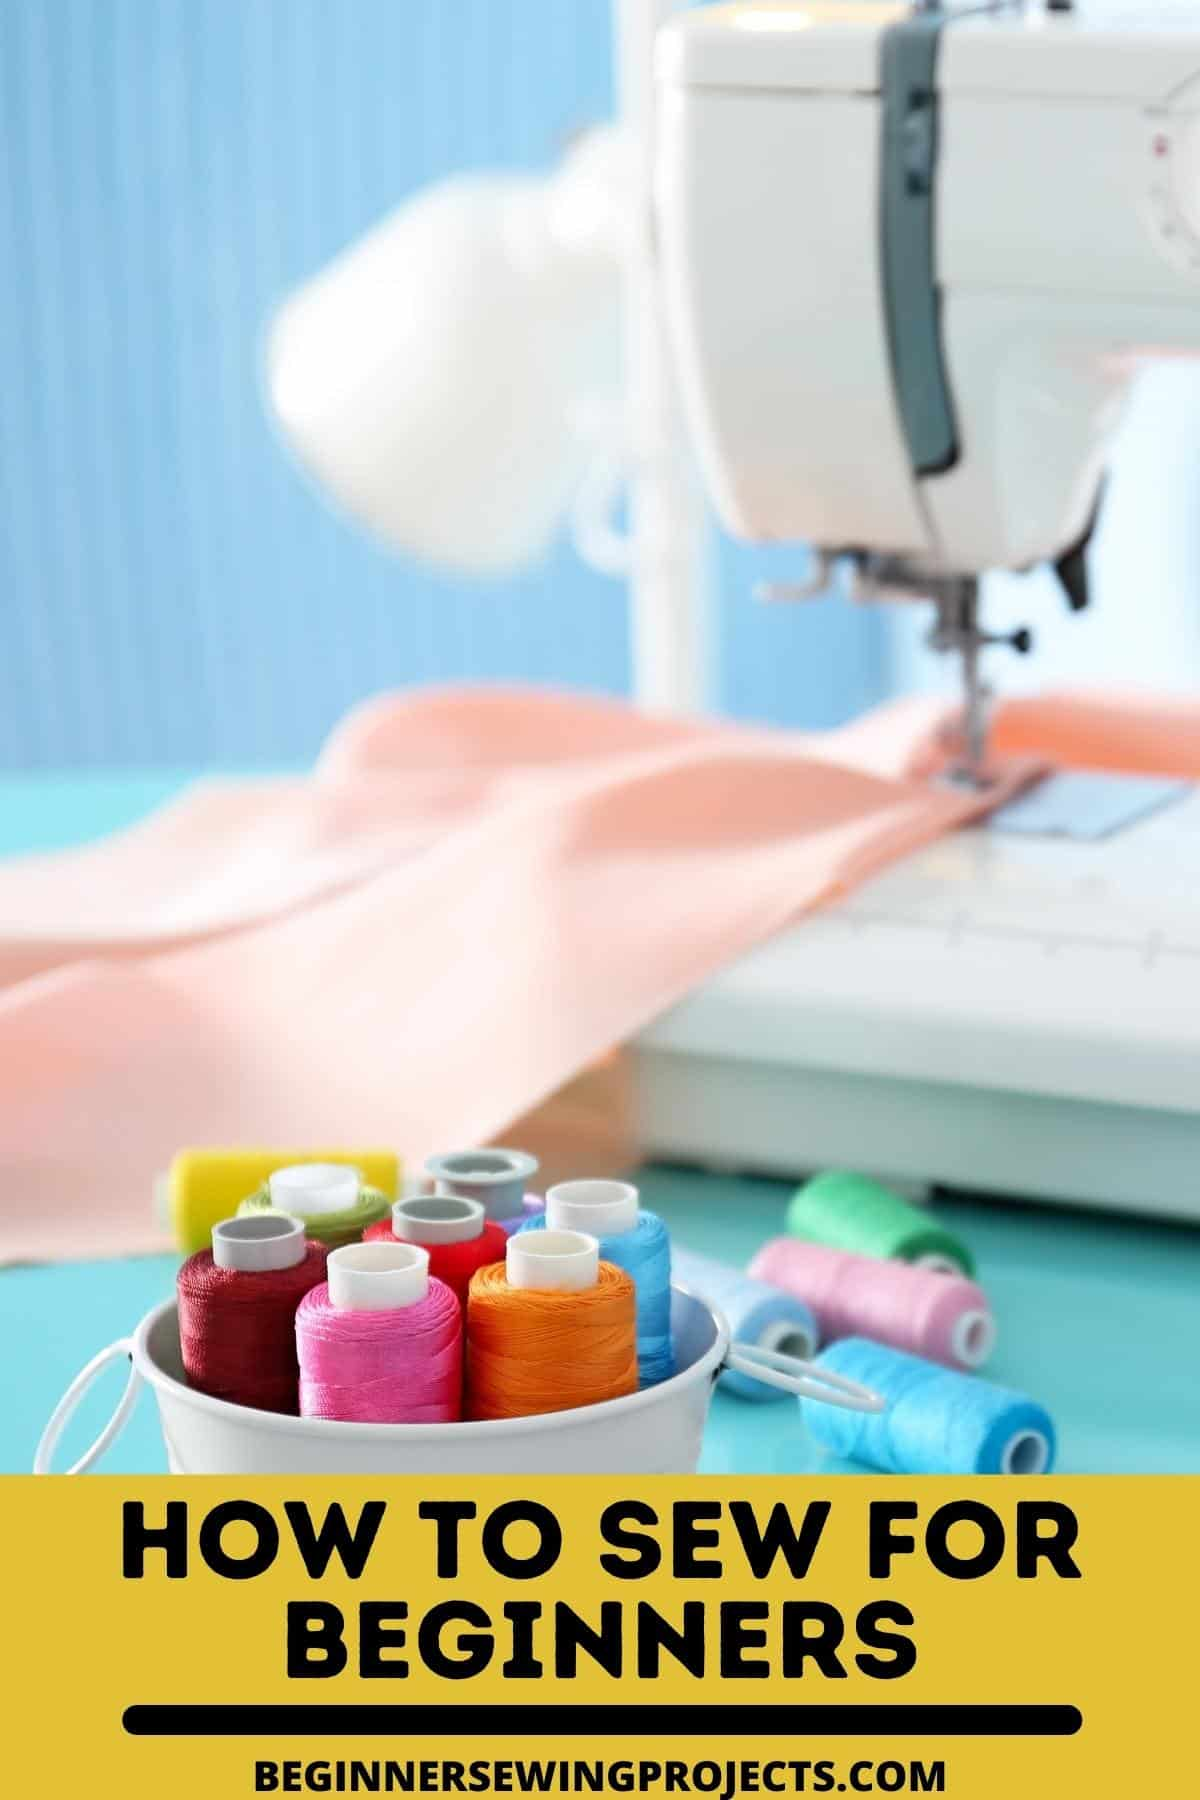 How To Sew For Beginners